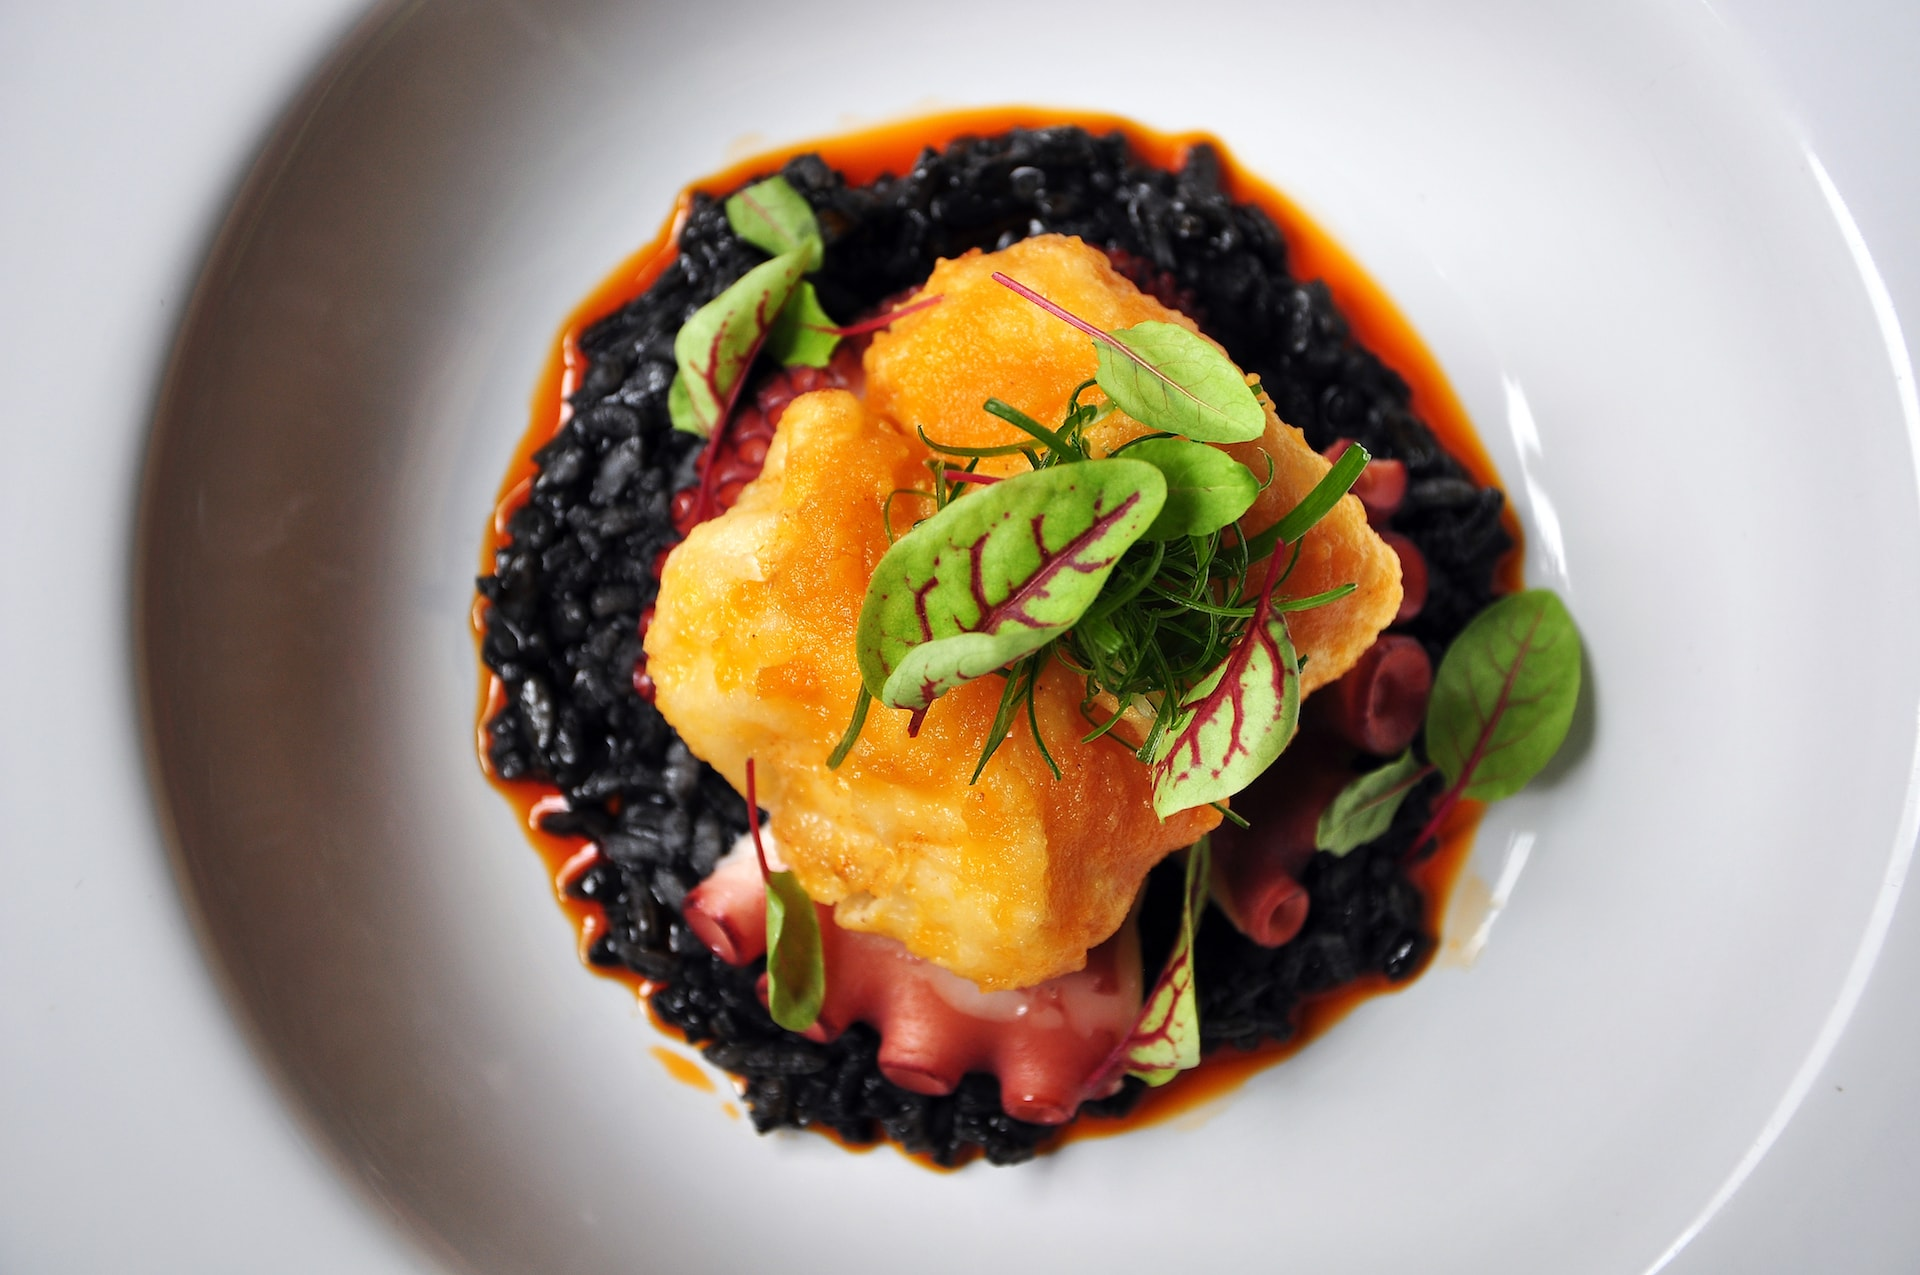 Signature-Salted-Egg-Yolk-Grouper-with-Torched-Octopus-Squid-Ink-Risotto-2-min Indigo at The Blue Mansion